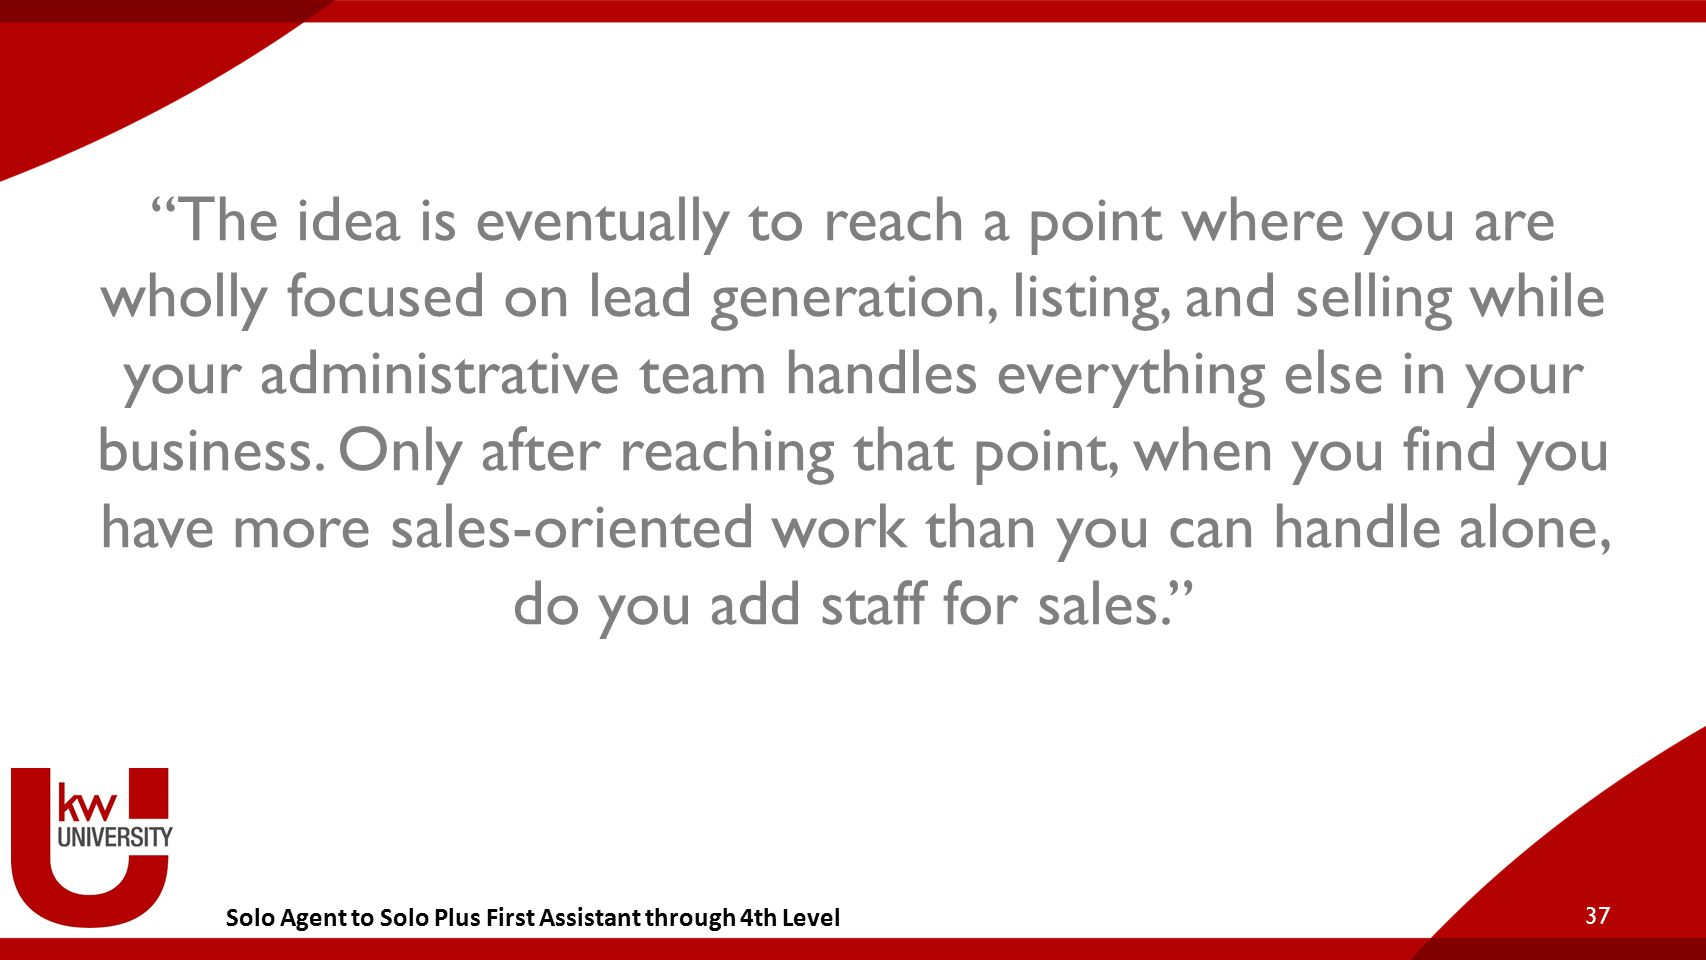 Solo Agent to Solo Plus First Assistant through 4th Level The idea is eventually to reach a point where you are wholly focused on lead generation, listing, and selling while your administrative team handles everything else in your business.